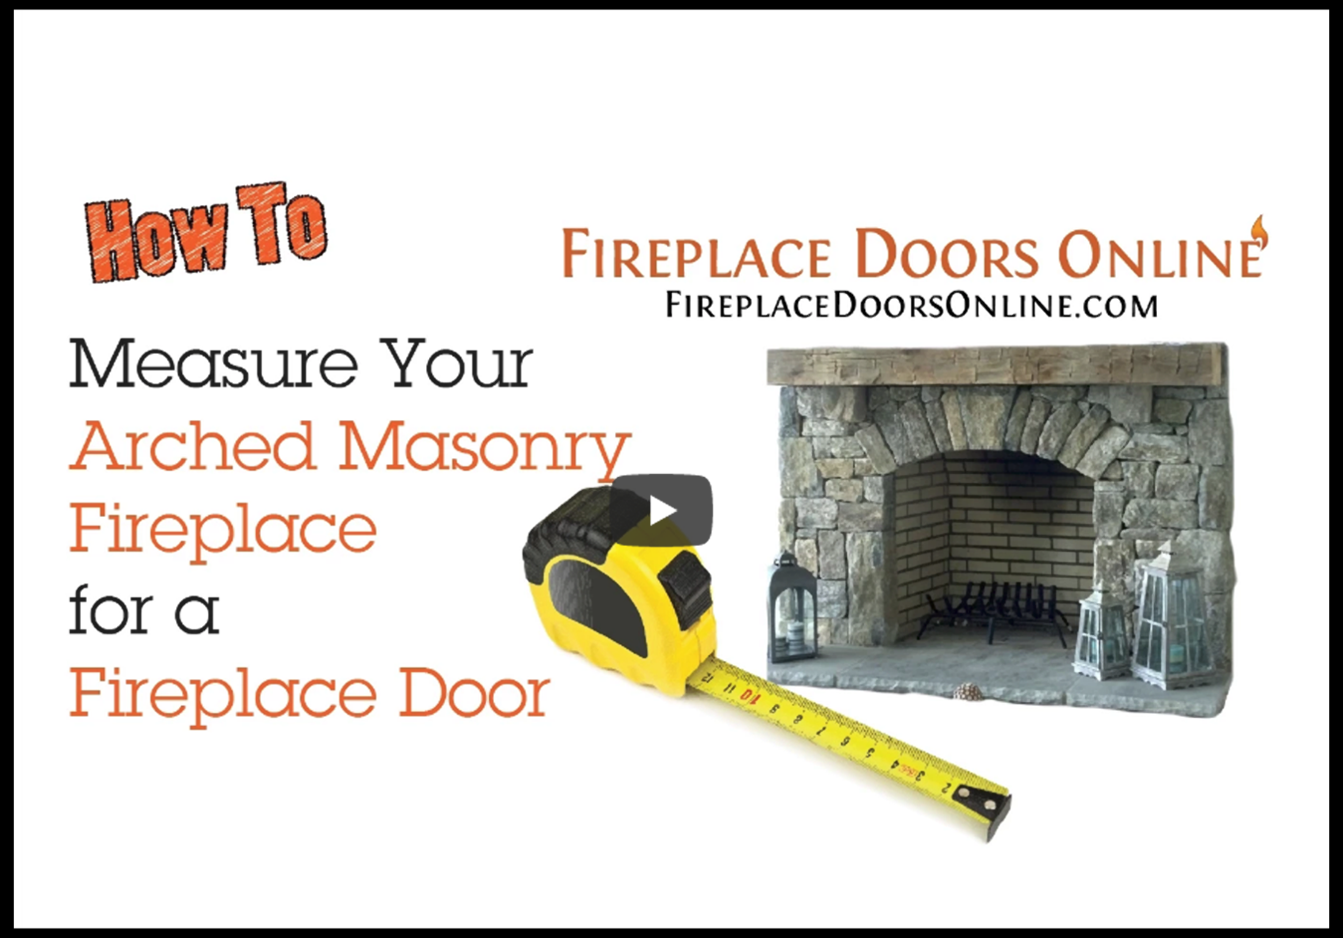 How To Measure an Arched Opening for a Fireplace Door